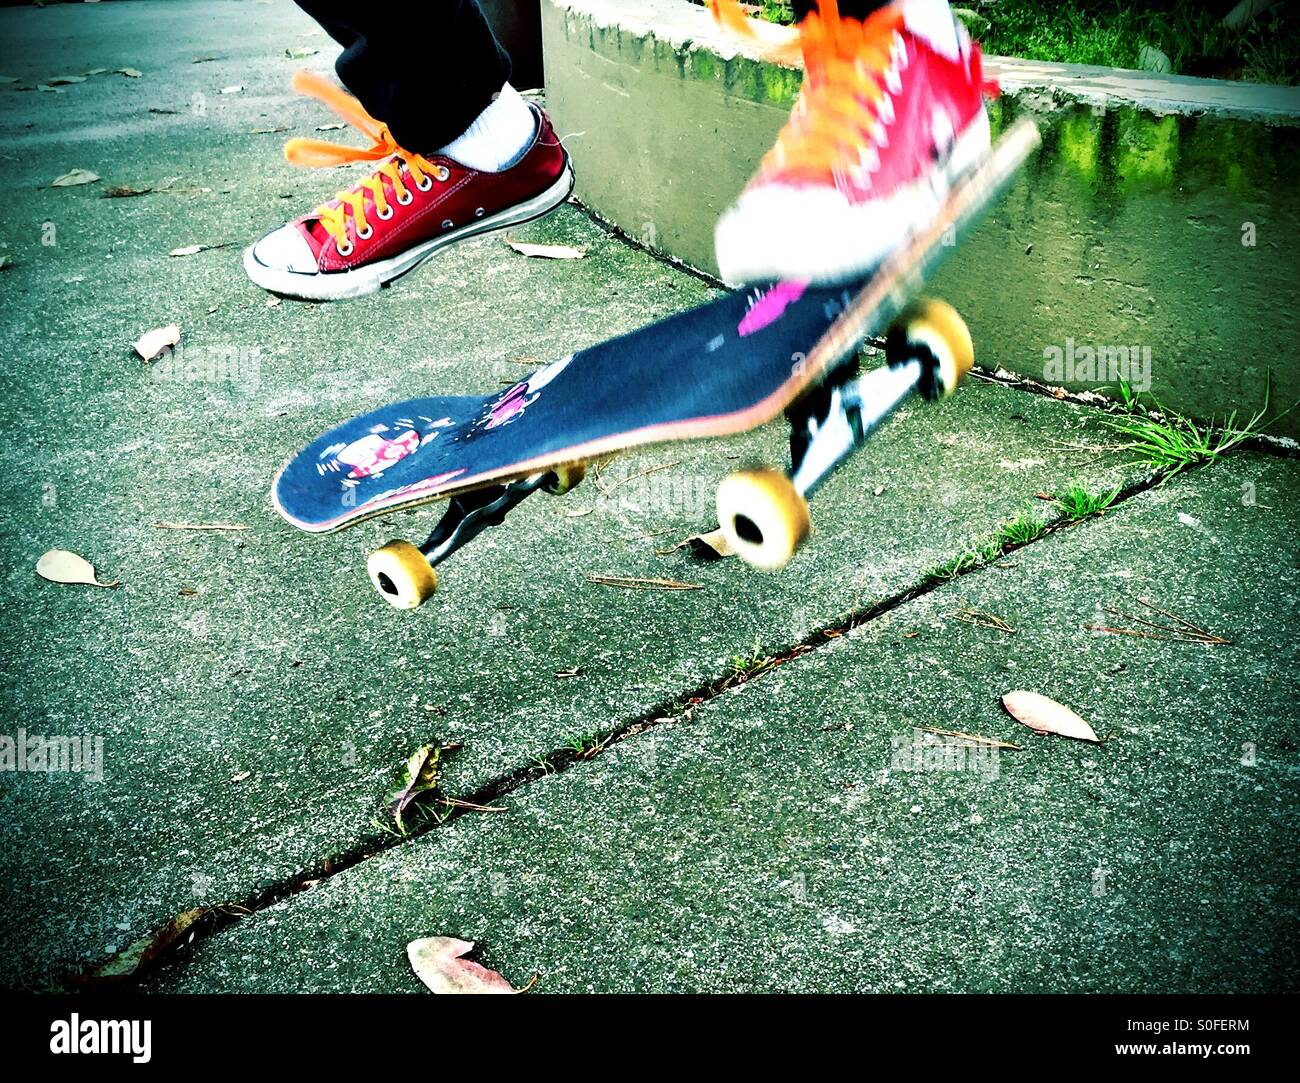 Obtenir de l'air, coups de pied, saut, en skateboard tandis que clad dans red sneakers avec lacets orange. Photo Stock